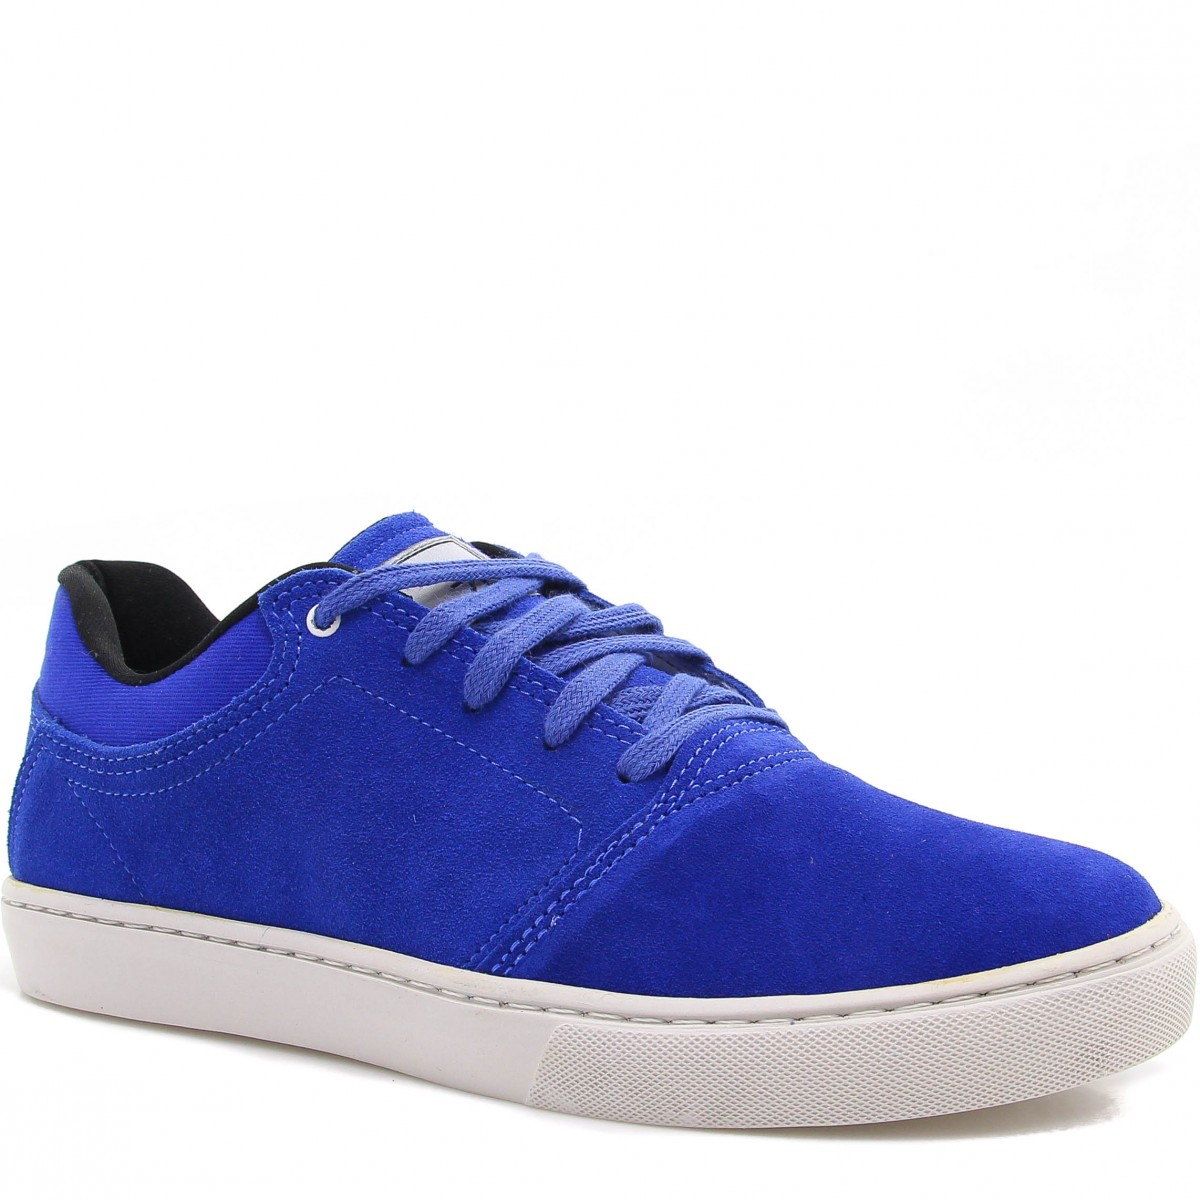 Tênis Casual Zariff Shoes Skate Azul